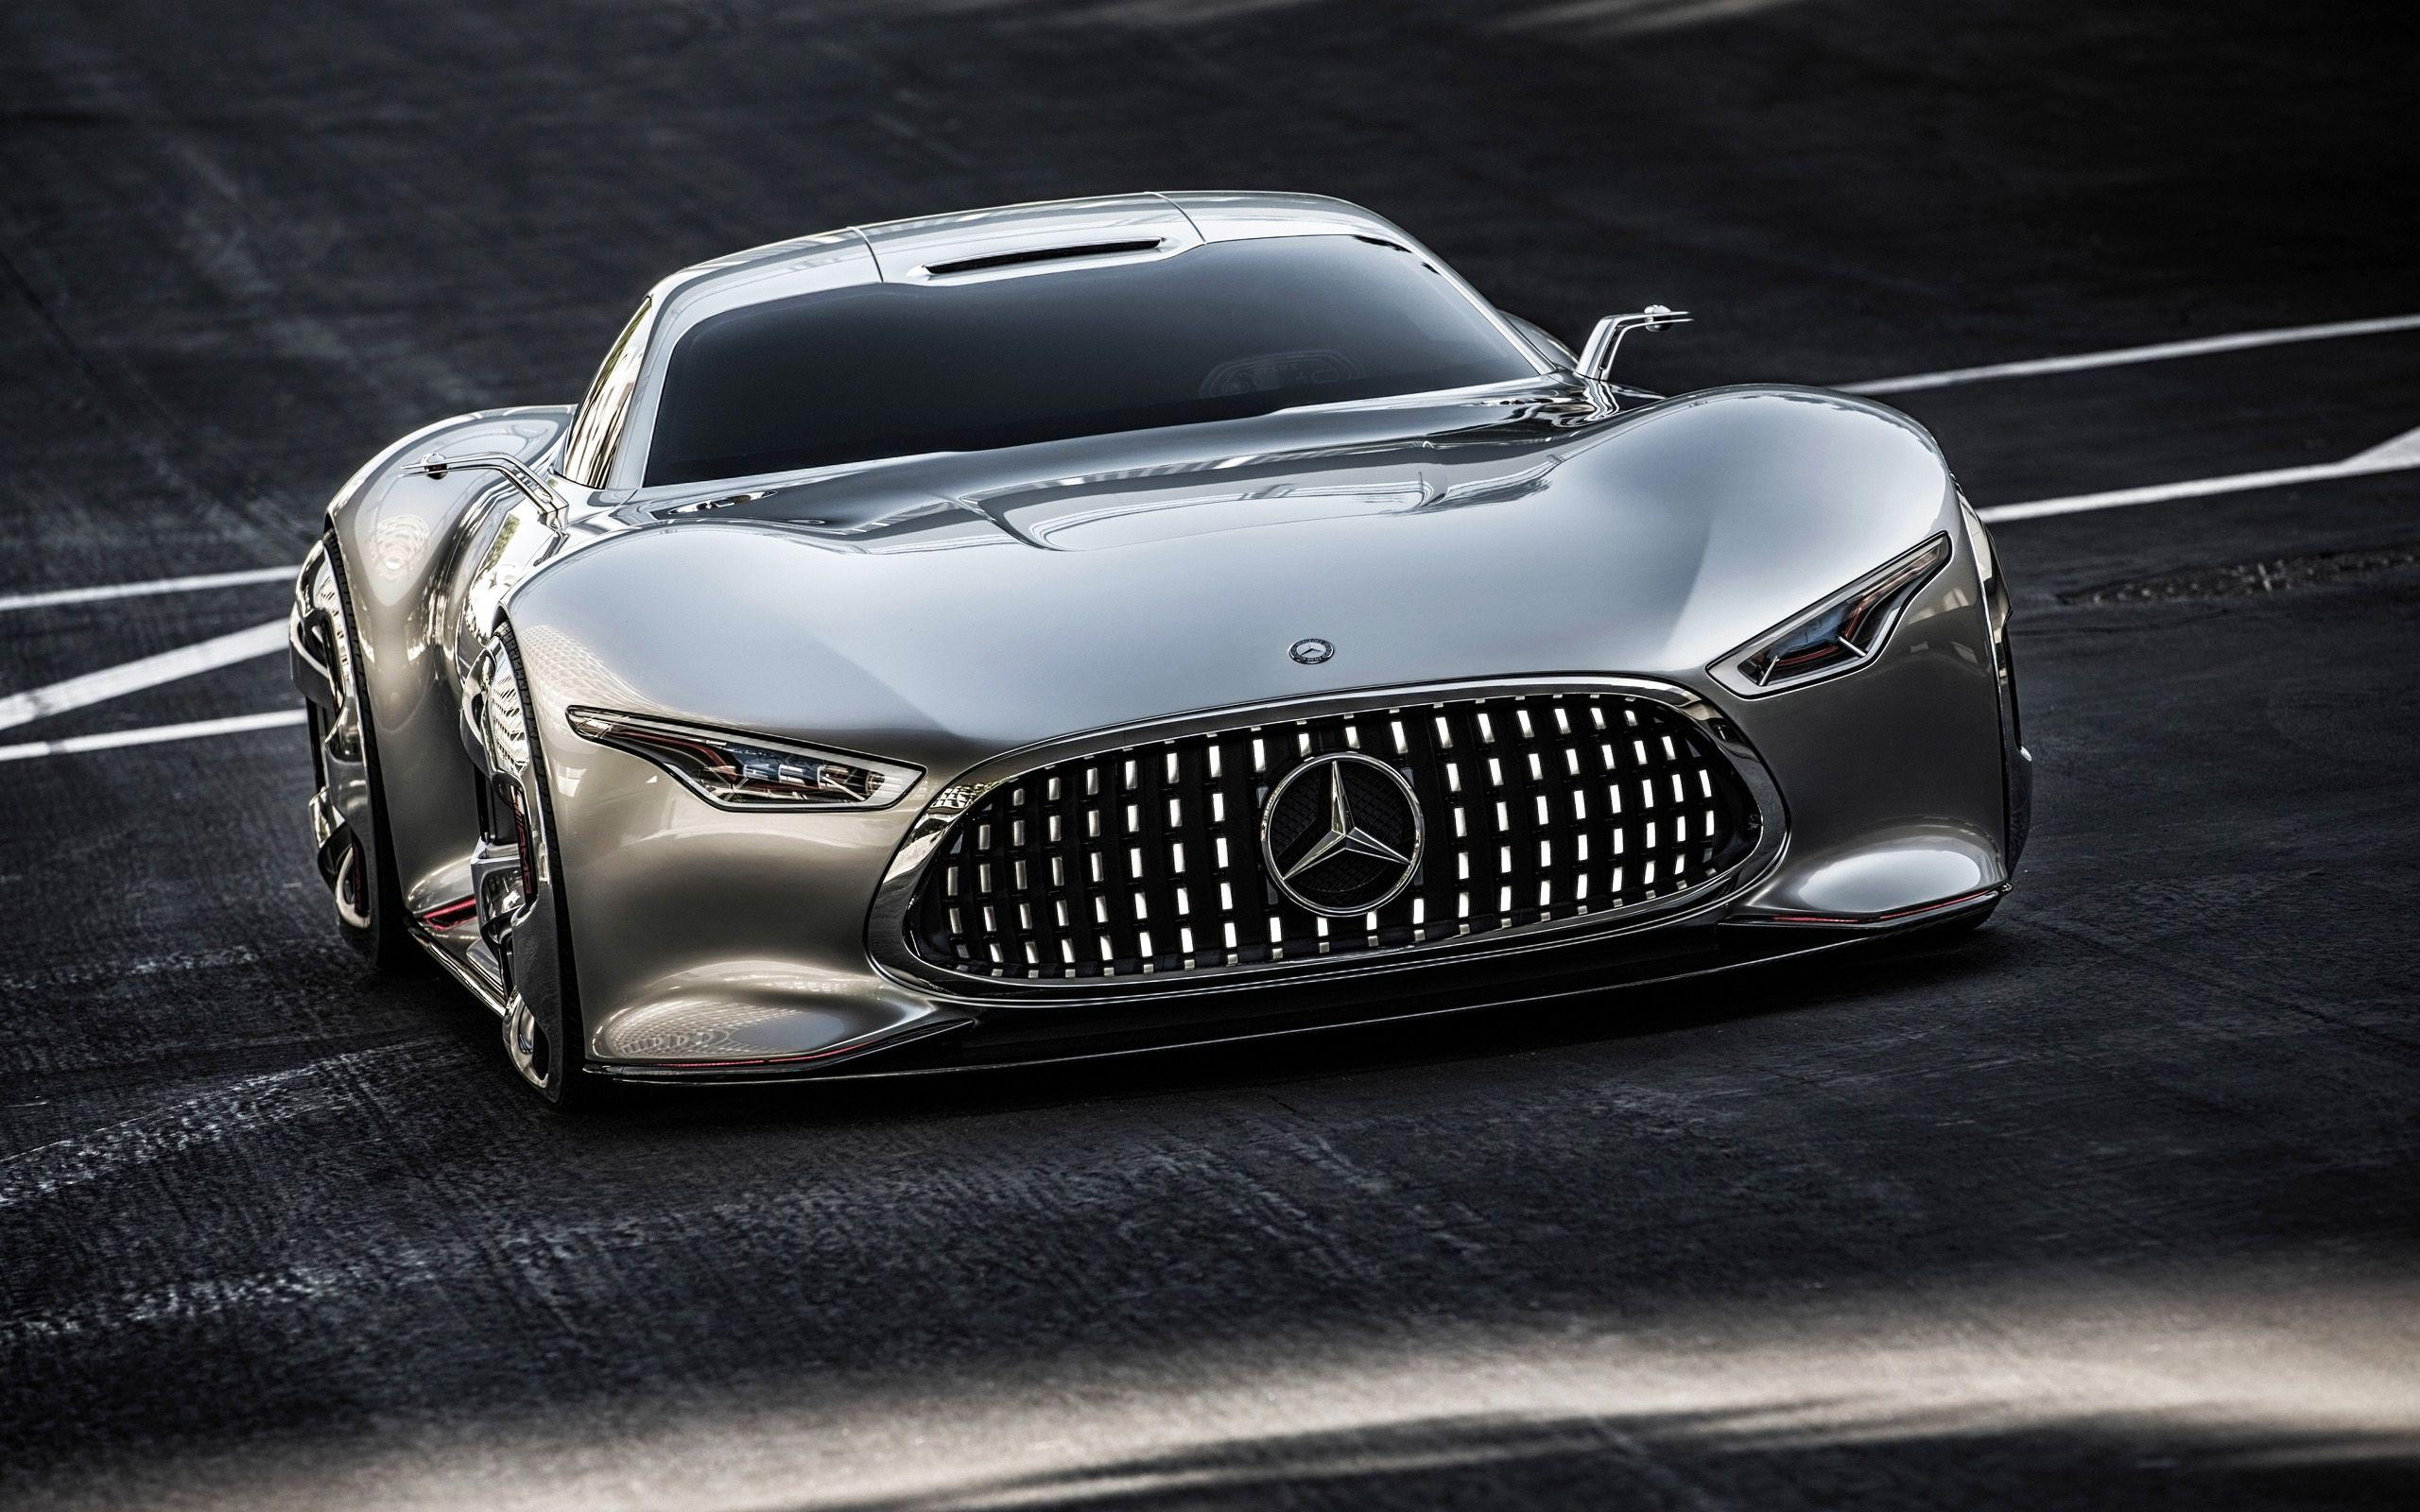 Mercedes Benz AMG Vision Gran Turismo Wallpapers